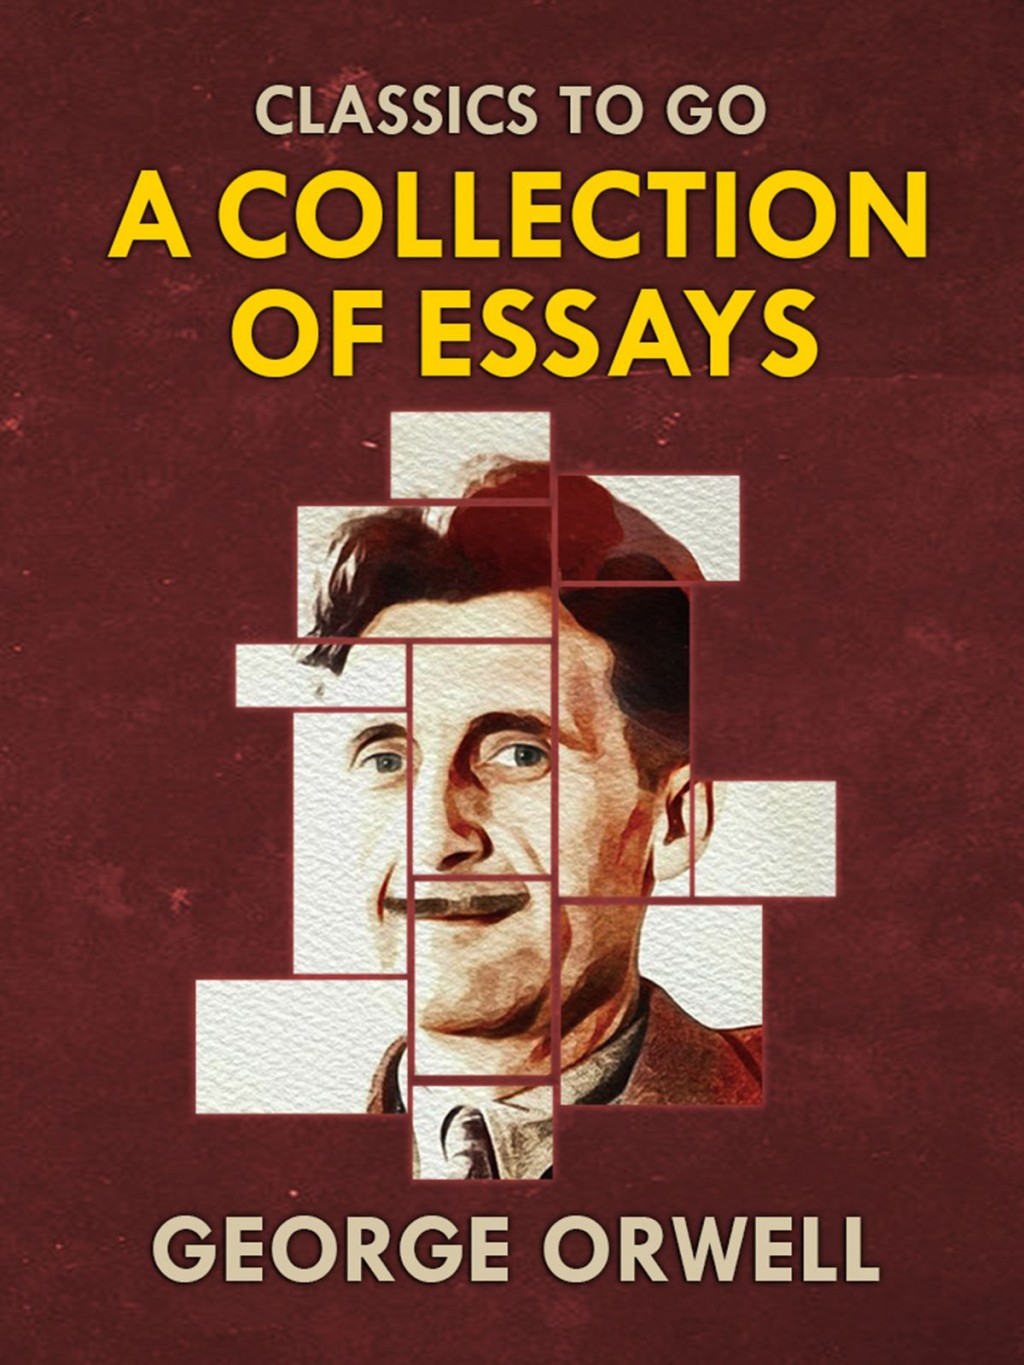 006 Essay Example Collections Of George Orwell Singular Essays Pdf Themes Large